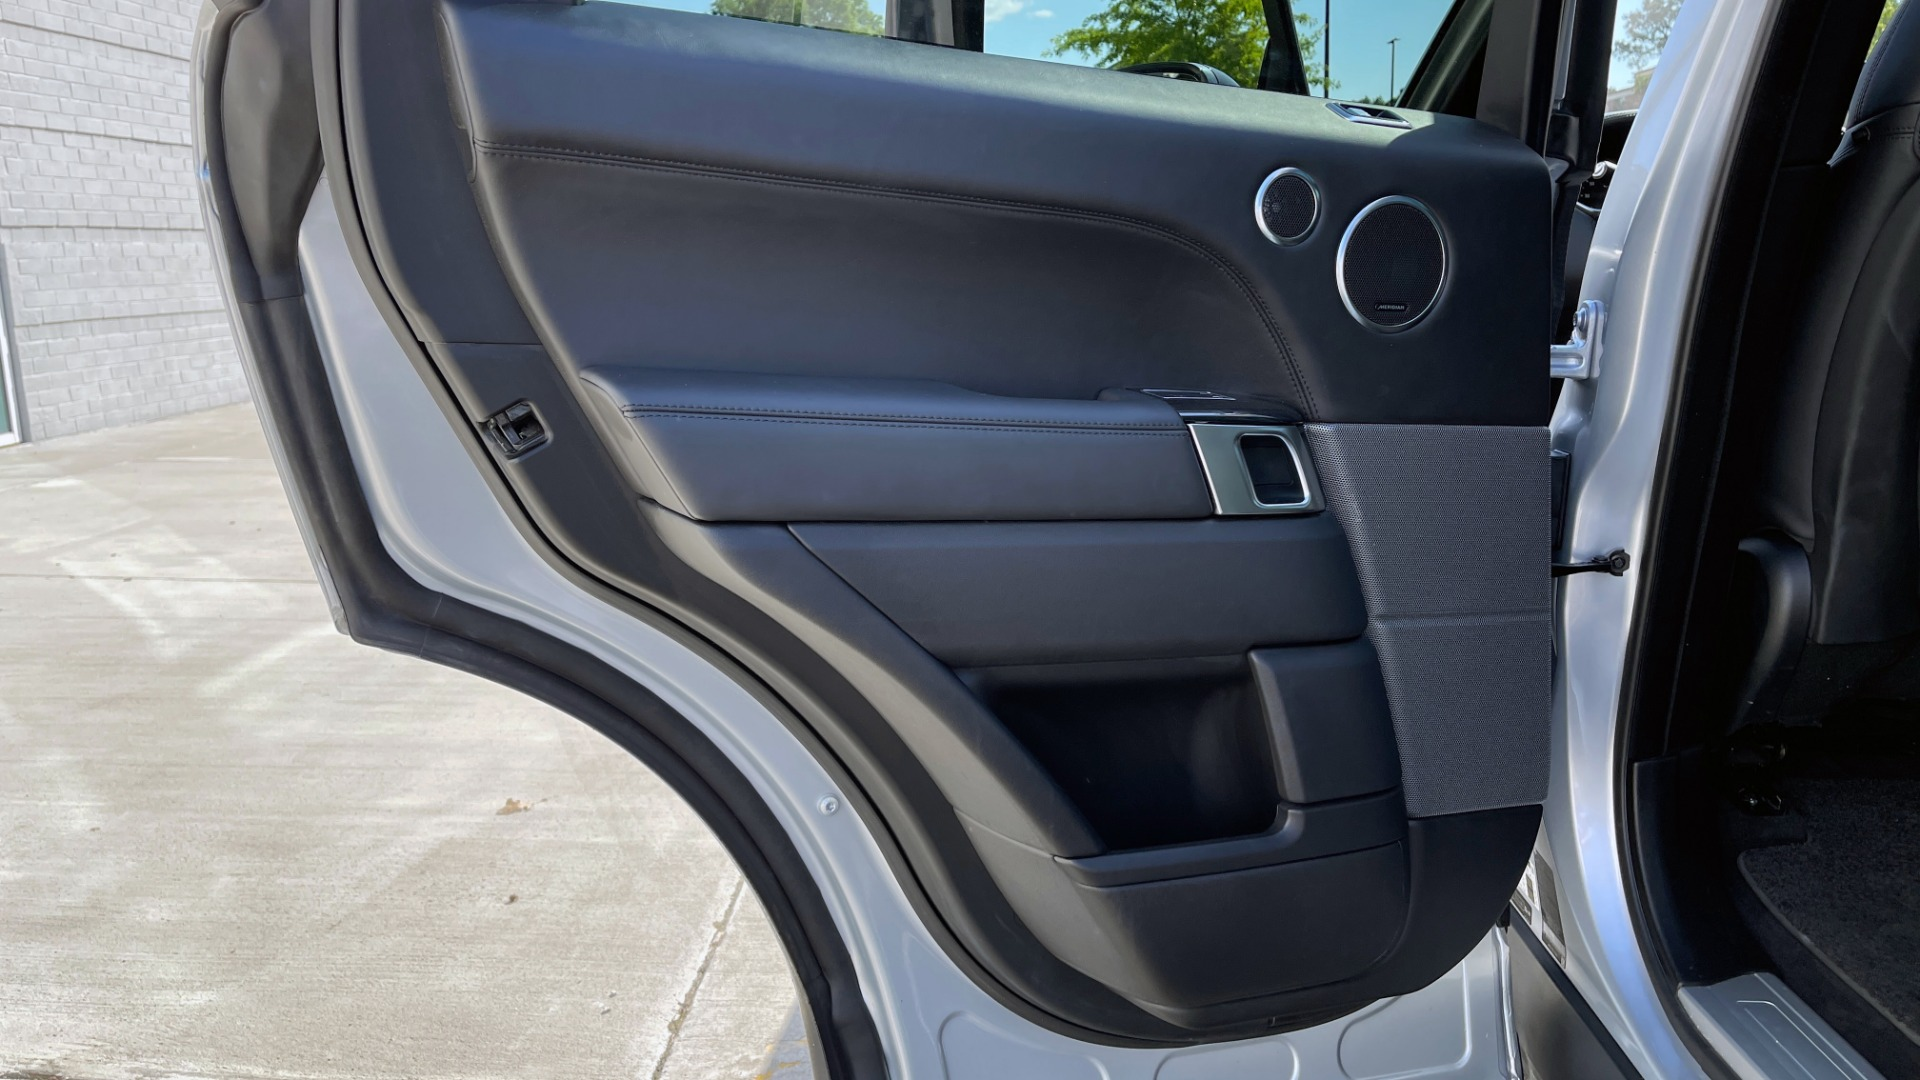 Used 2019 Land Rover RANGE ROVER SPORT HSE DYNAMIC / 3.0L SC V6 / 8-SPD / APPLE / NAV / SUNROOF / REARVIEW for sale Sold at Formula Imports in Charlotte NC 28227 85